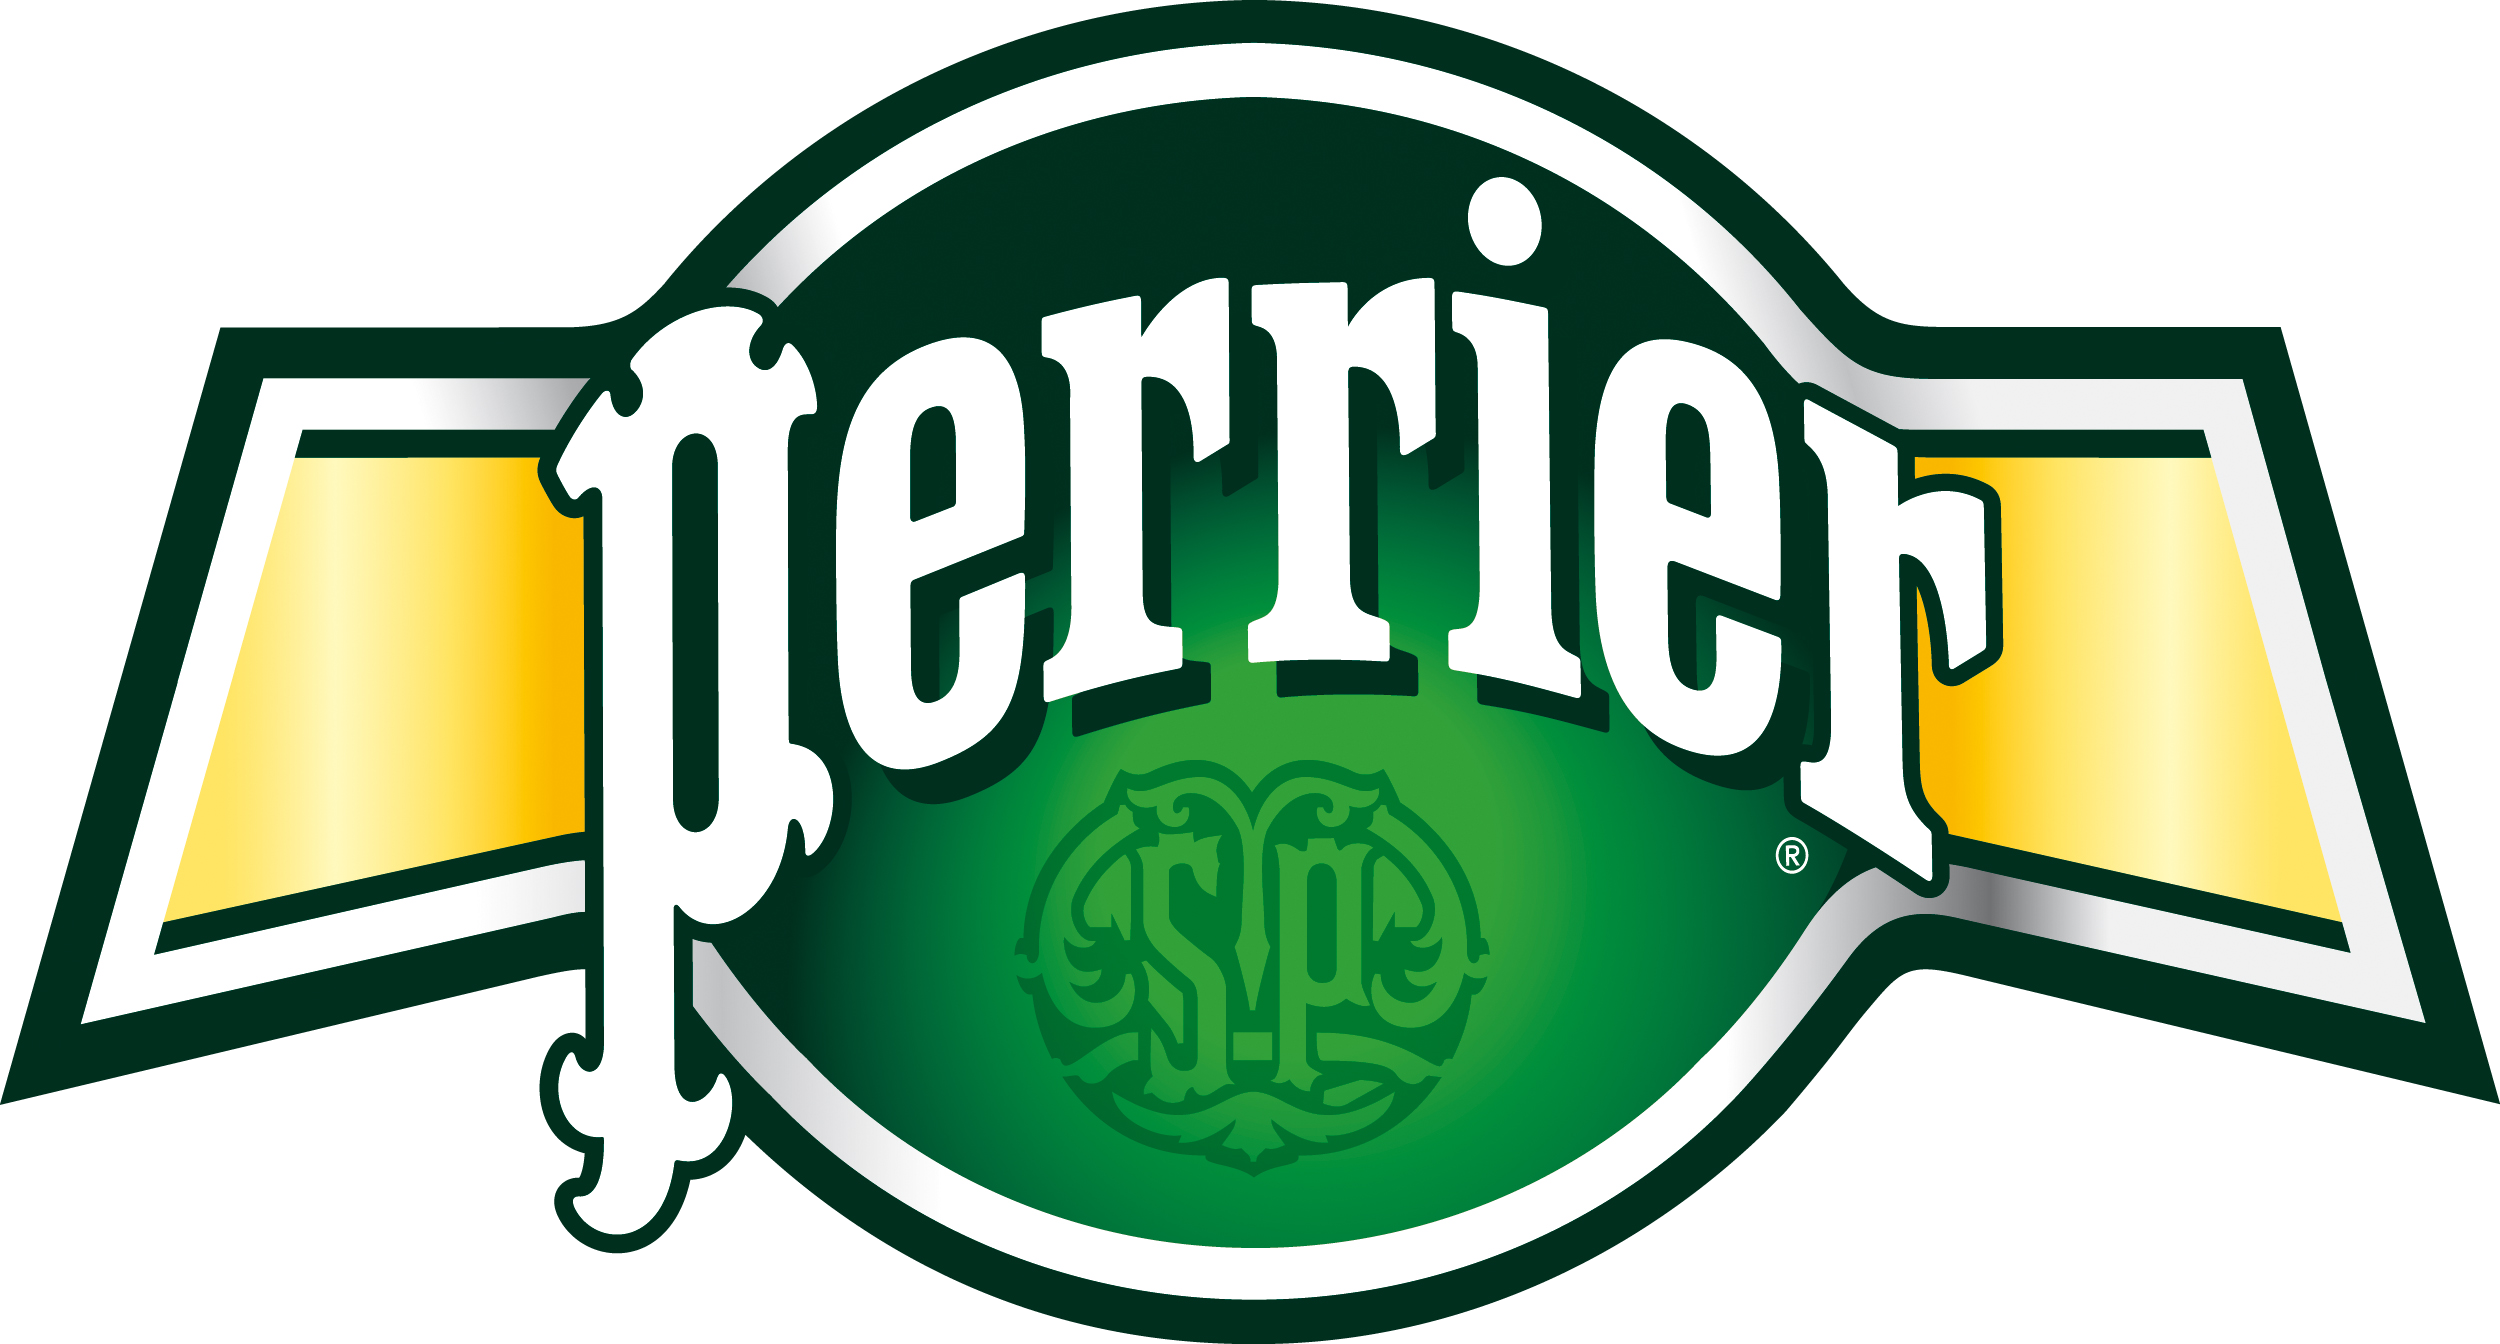 changes at perrier Perrier peach is sugar-free,  hostess is once again adding some major changes to its lineup by giving the classic snack ding dongs a revamped flavor.